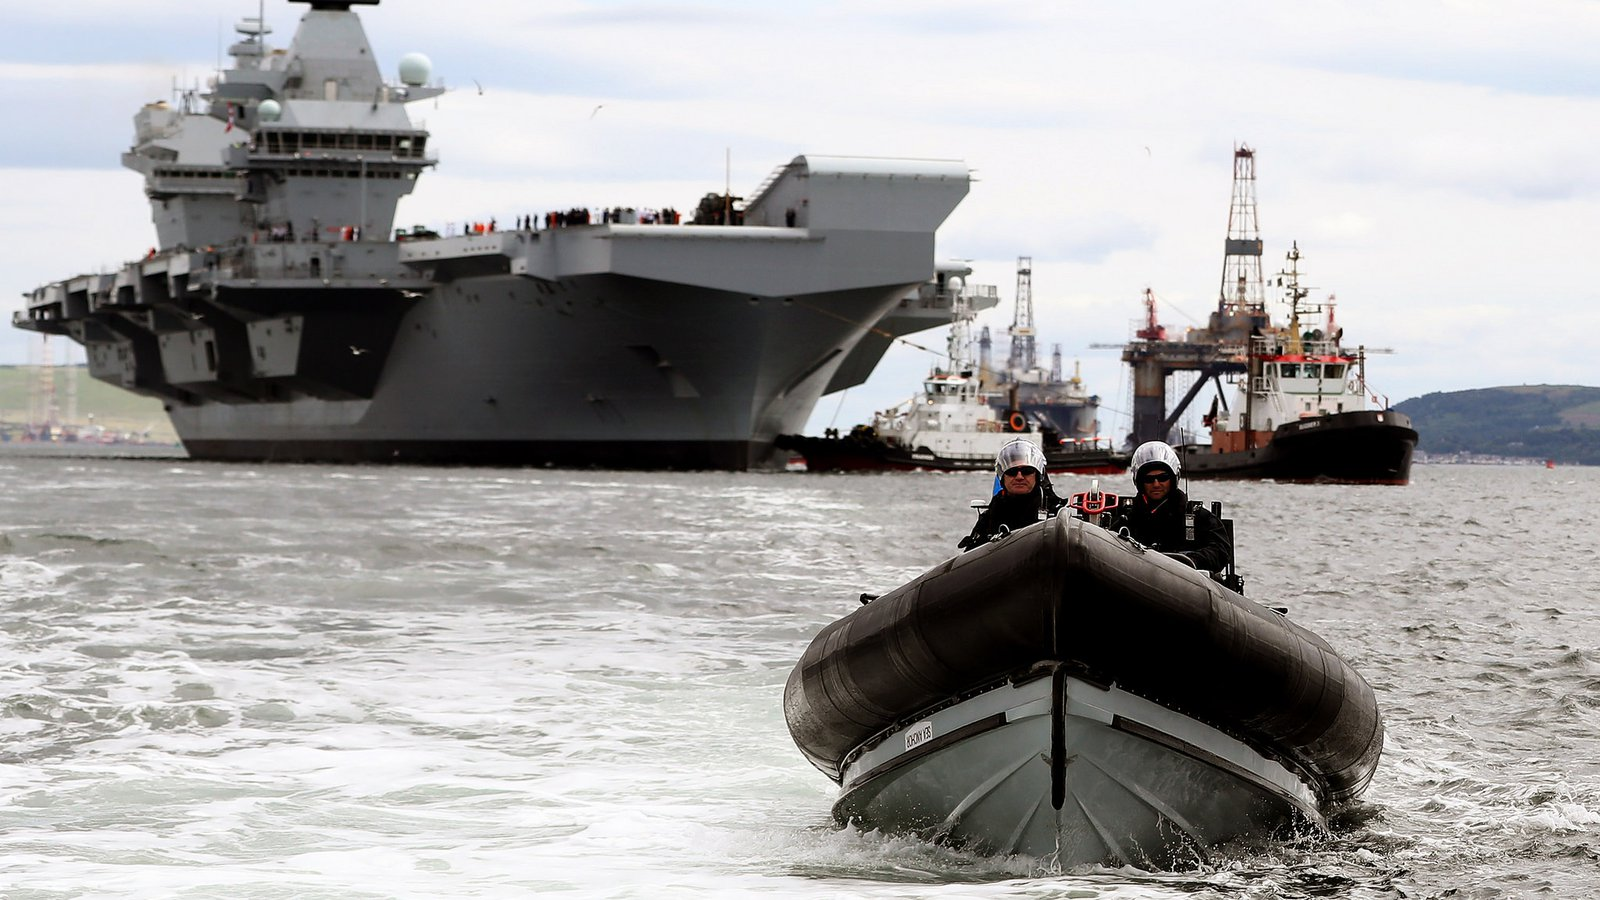 Theresa May Hails Hms Queen Elizabeth As A Symbol Of A Global